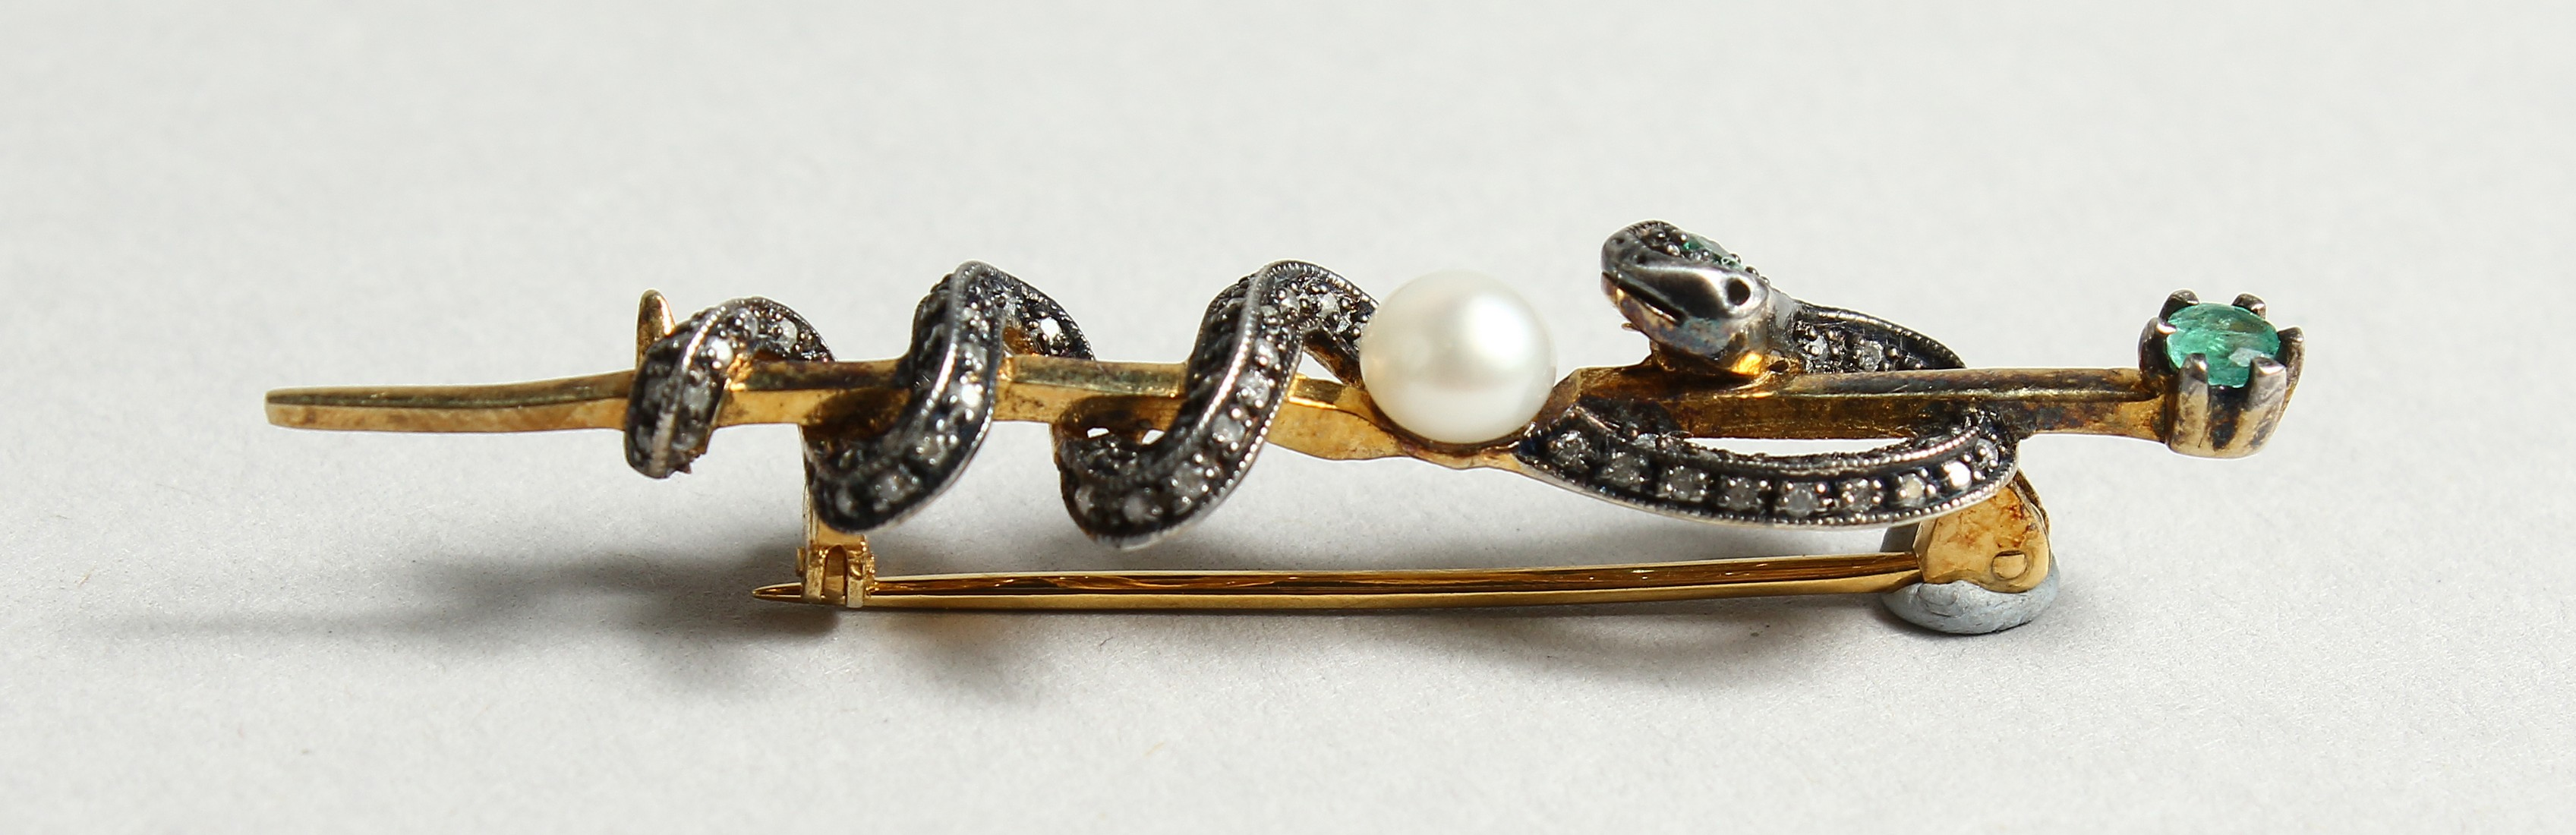 A DIAMOND AND PEARL SNAKE TIE PIN (Harrods) - Image 2 of 5